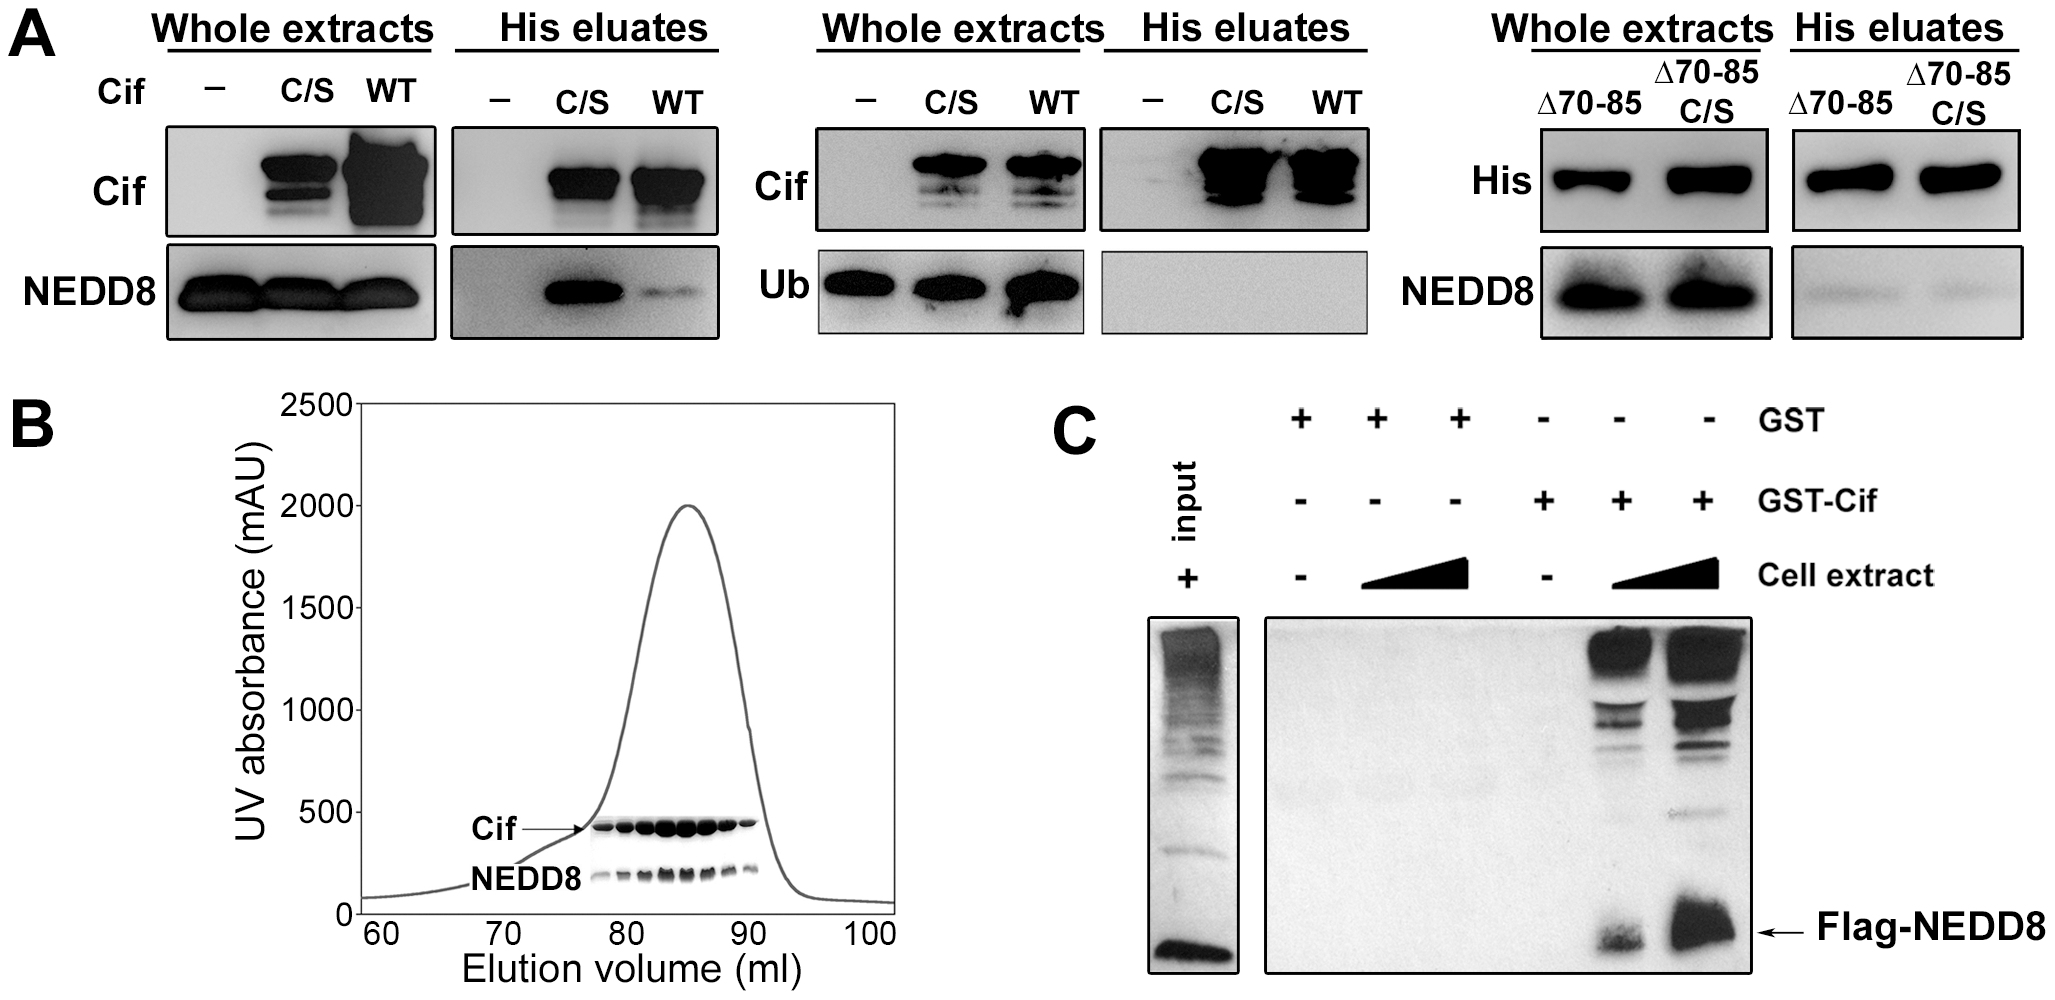 Cif interacts <i>in vitro</i> with the ubiquitin-like protein NEDD8.